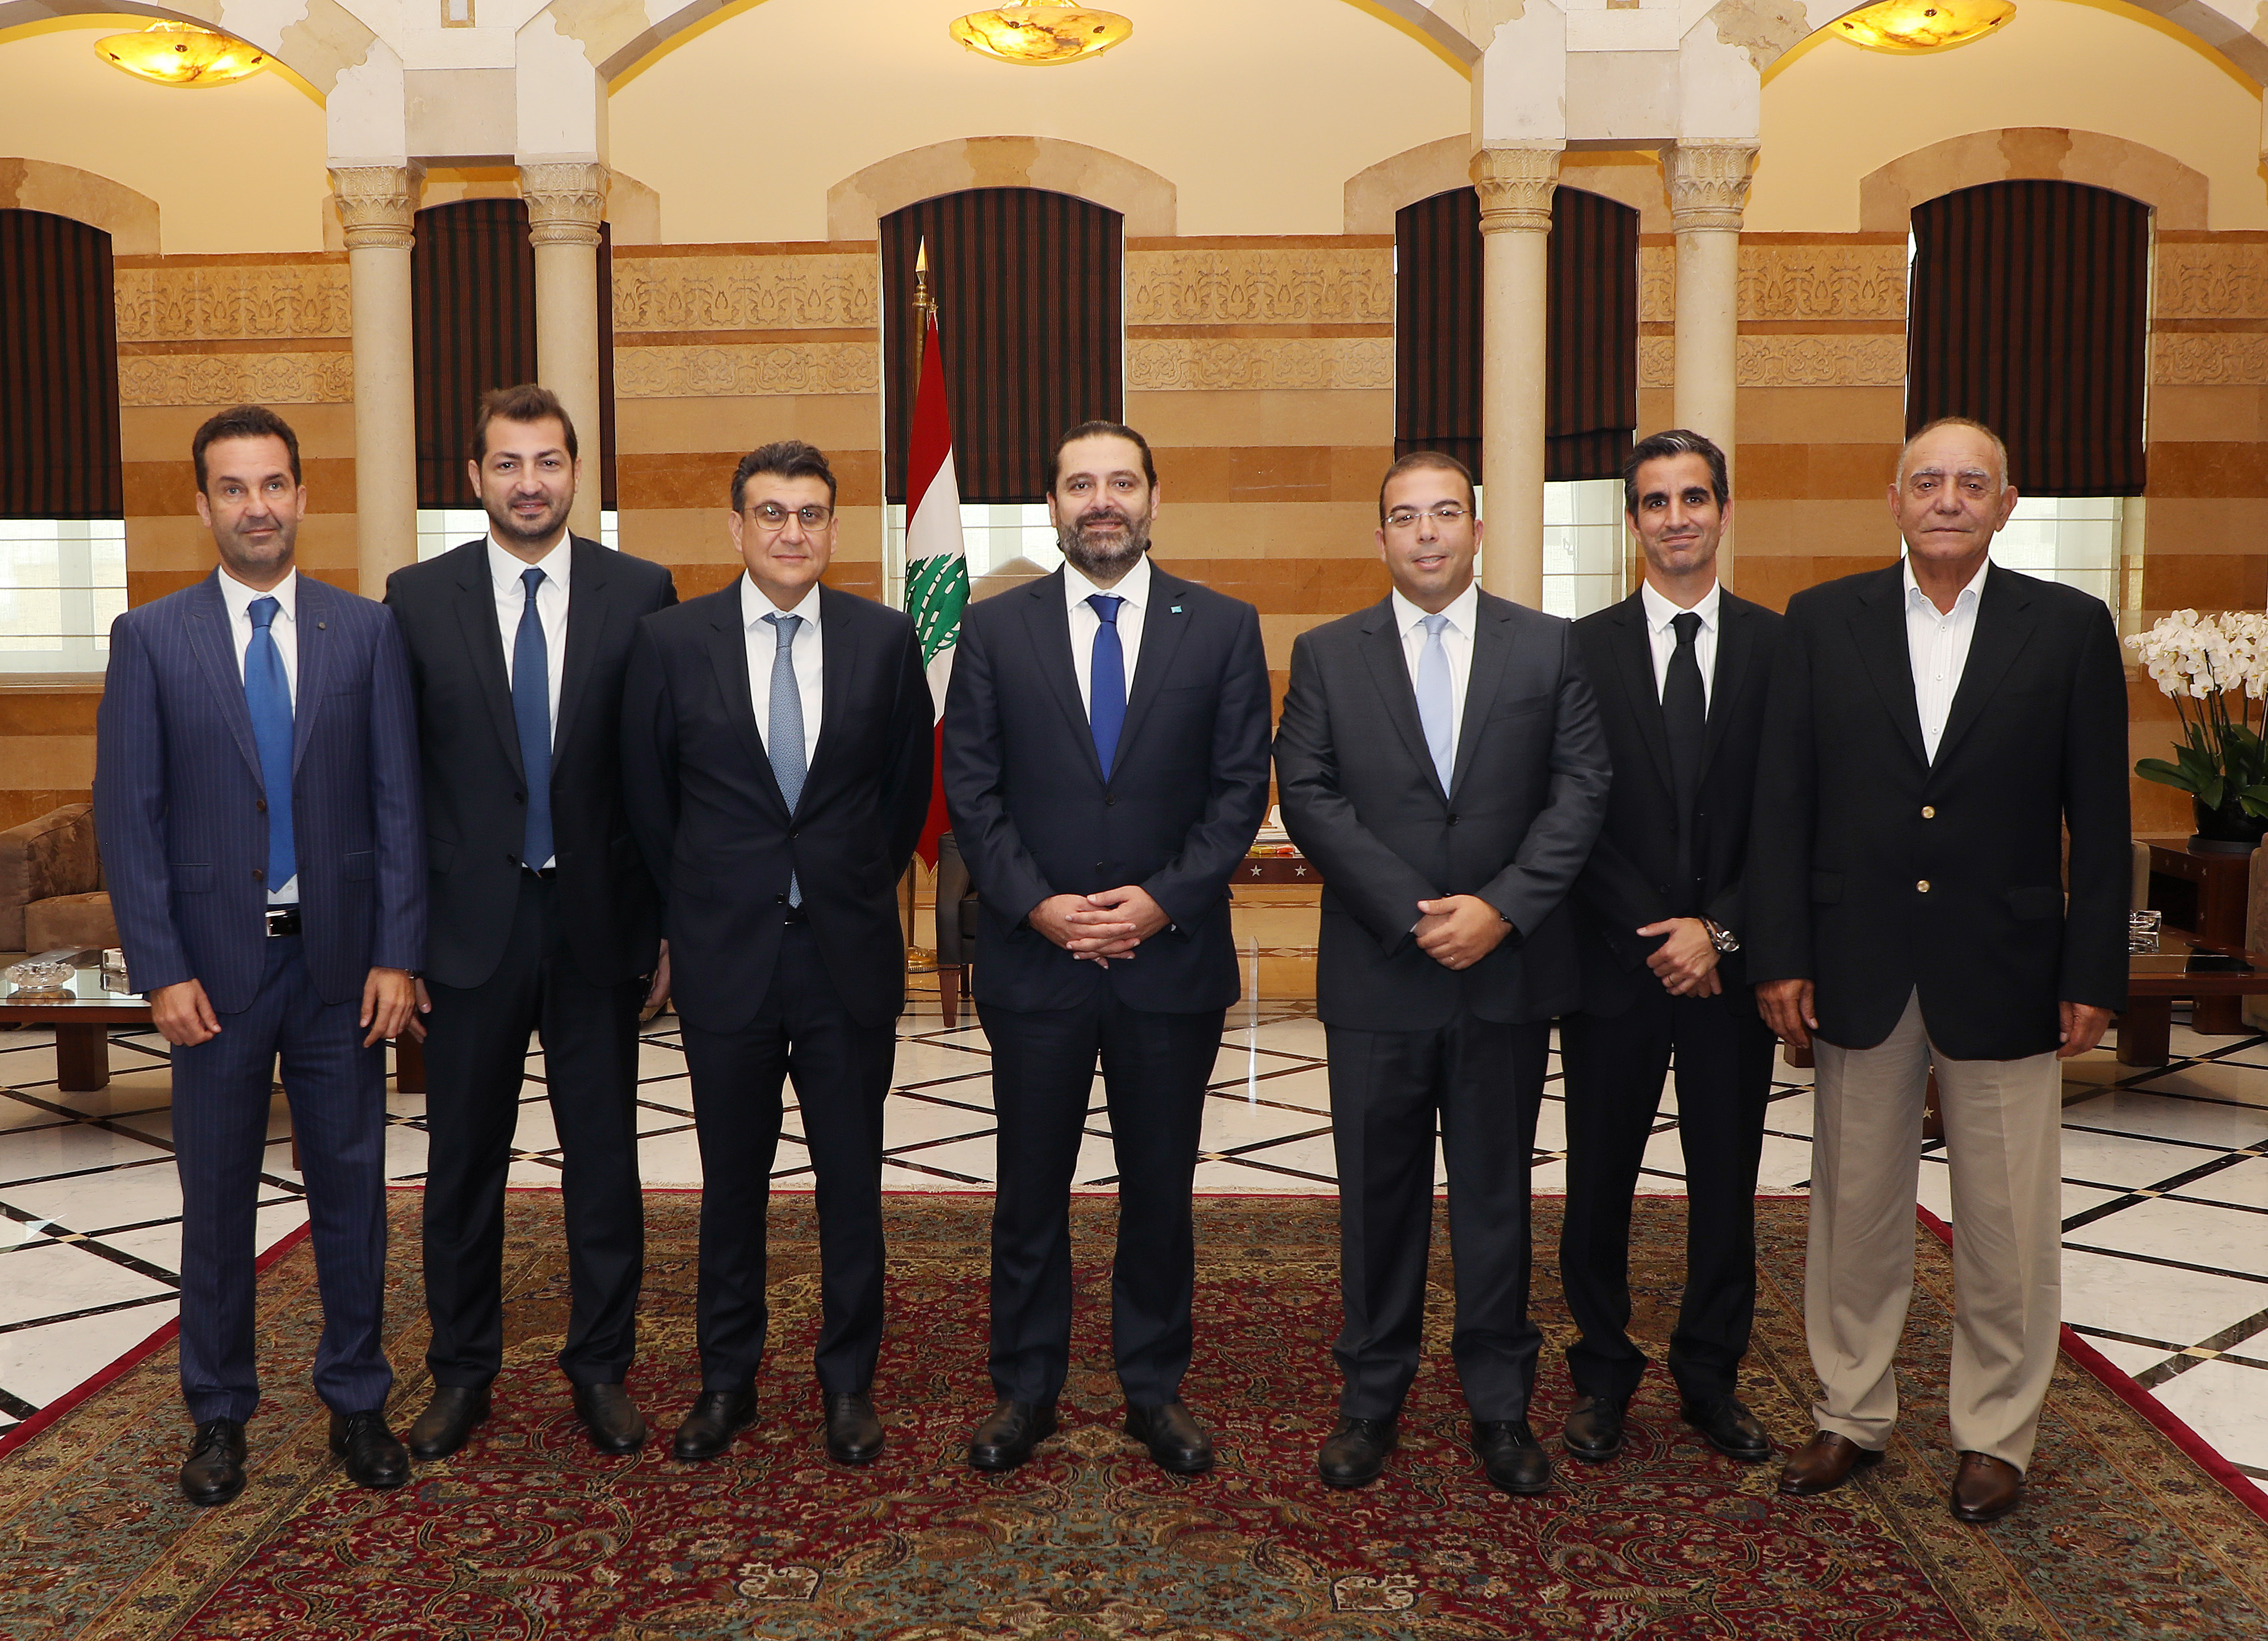 Pr Minister Saad Hariri meets a Delegation from Gluf Club